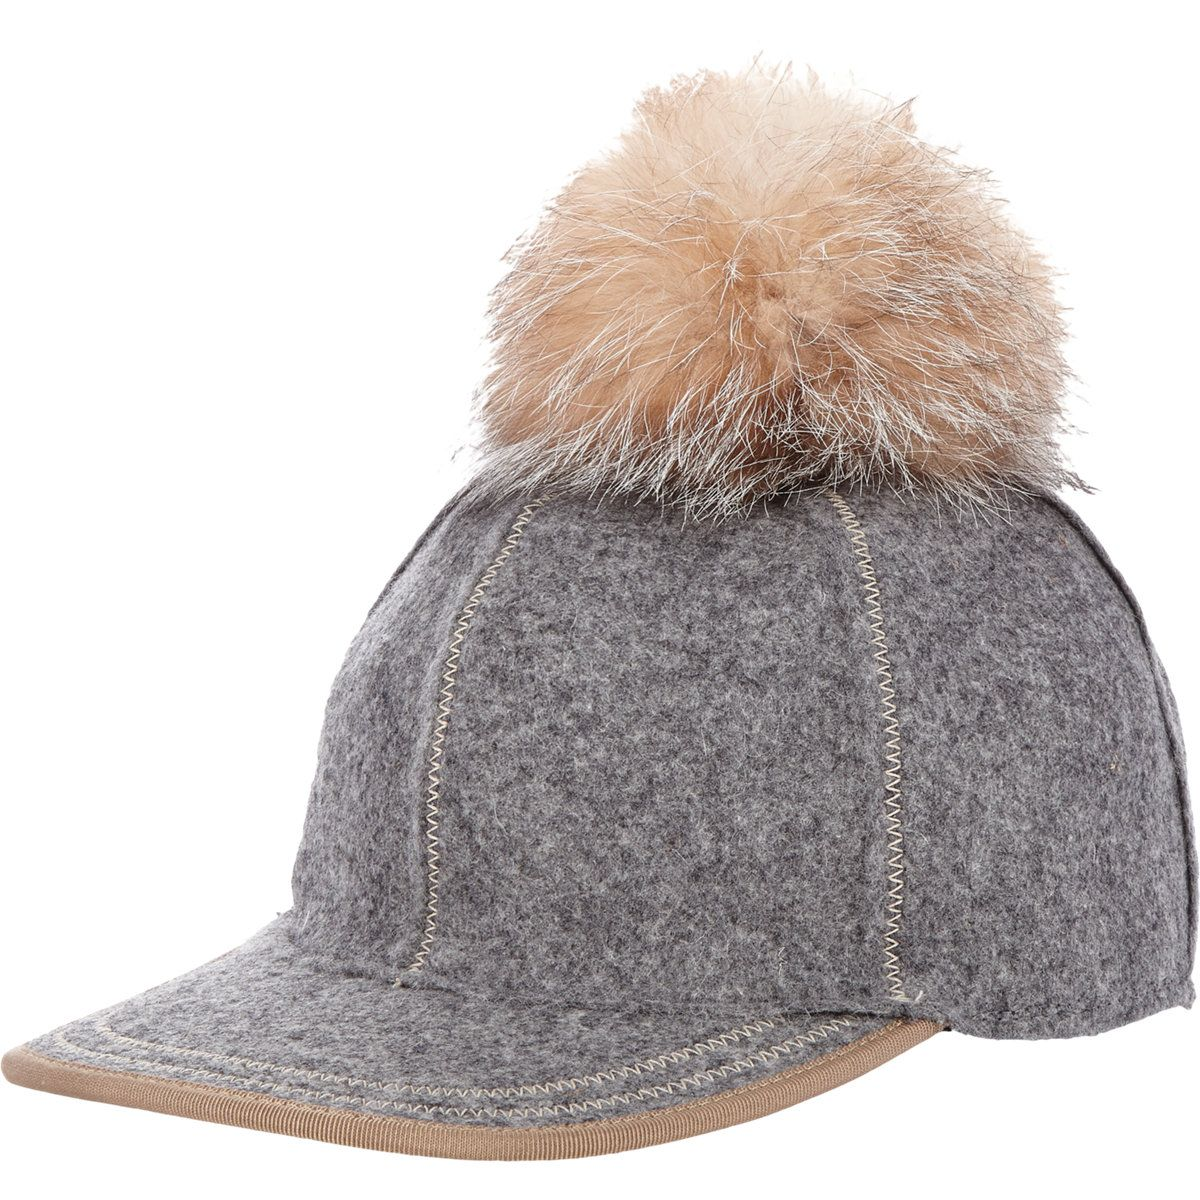 Womens Thumper Cap Lola Hats